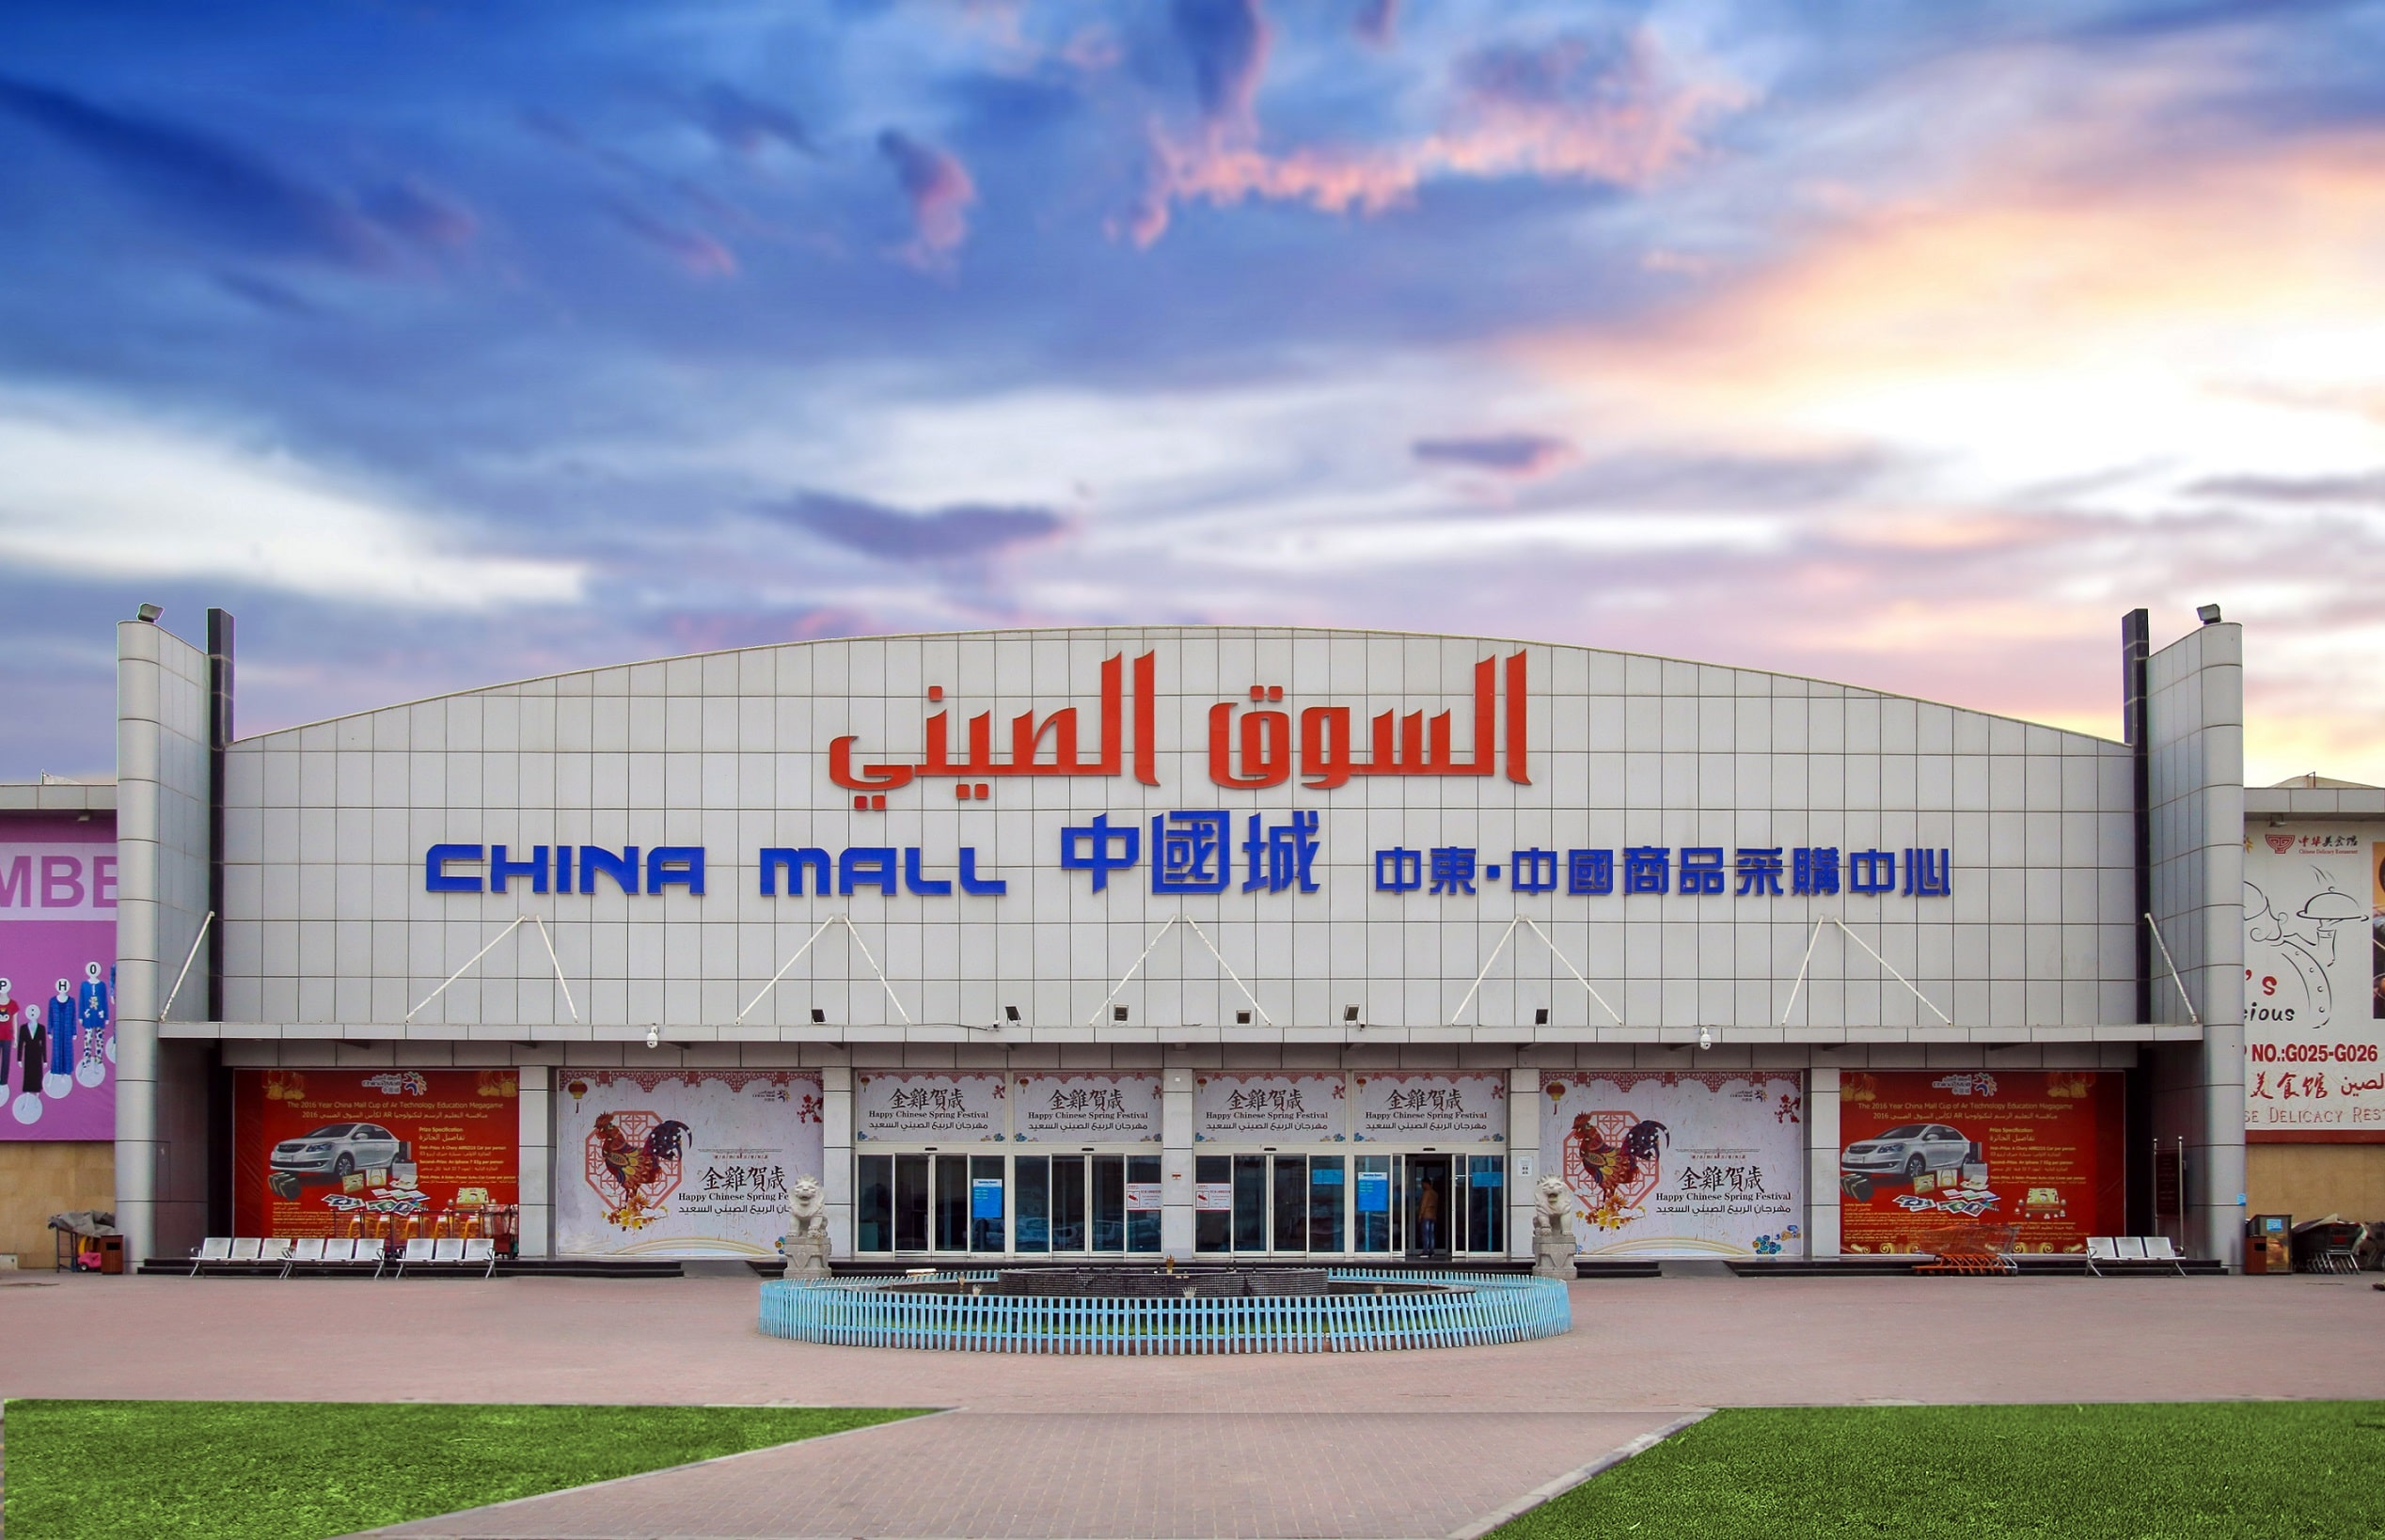 china-mall-records-over-one-million-shoppers-in-the-first-quarter-of-2019